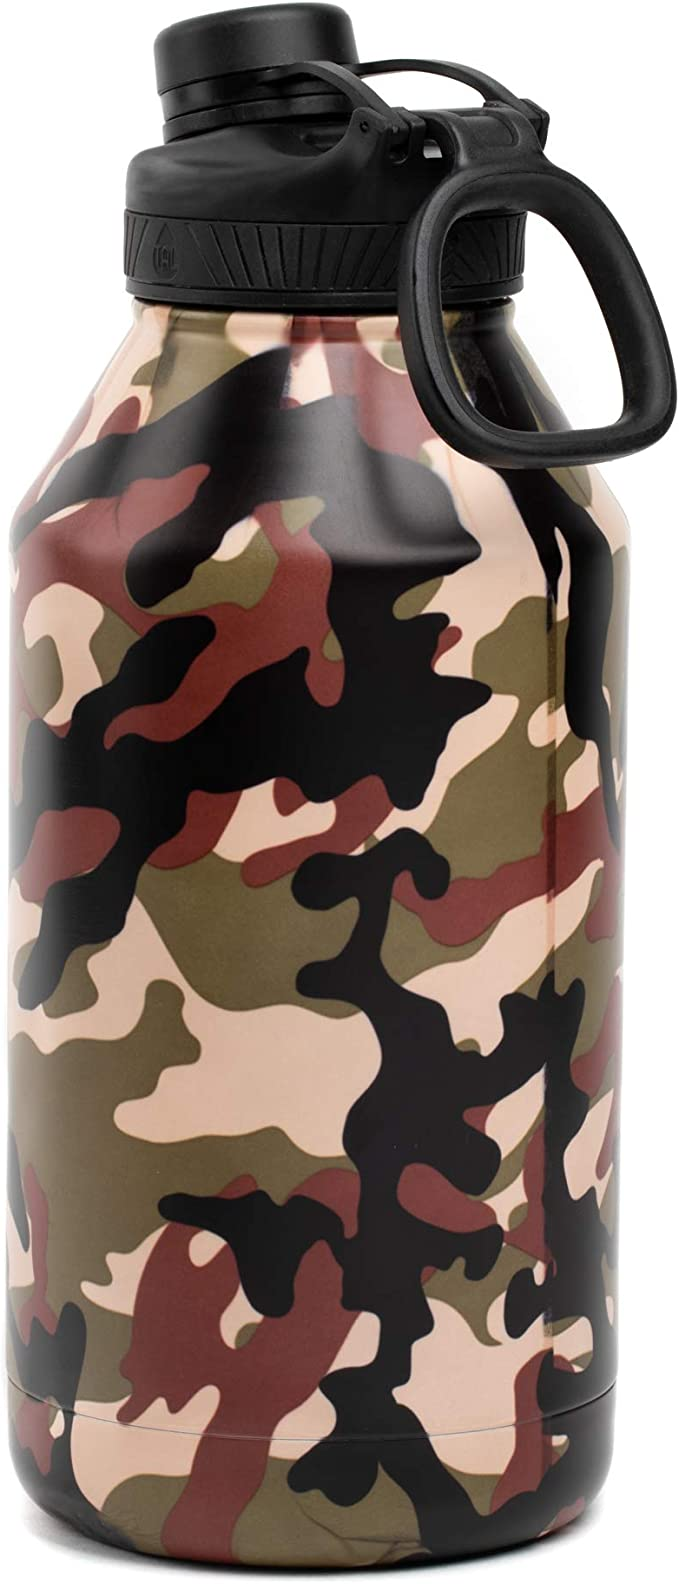 NRL MANLY SEA EAGLES STAINLESS STEEL WRAP DRINK BOTTLE CAMOUFLAGE PRINT 500ML